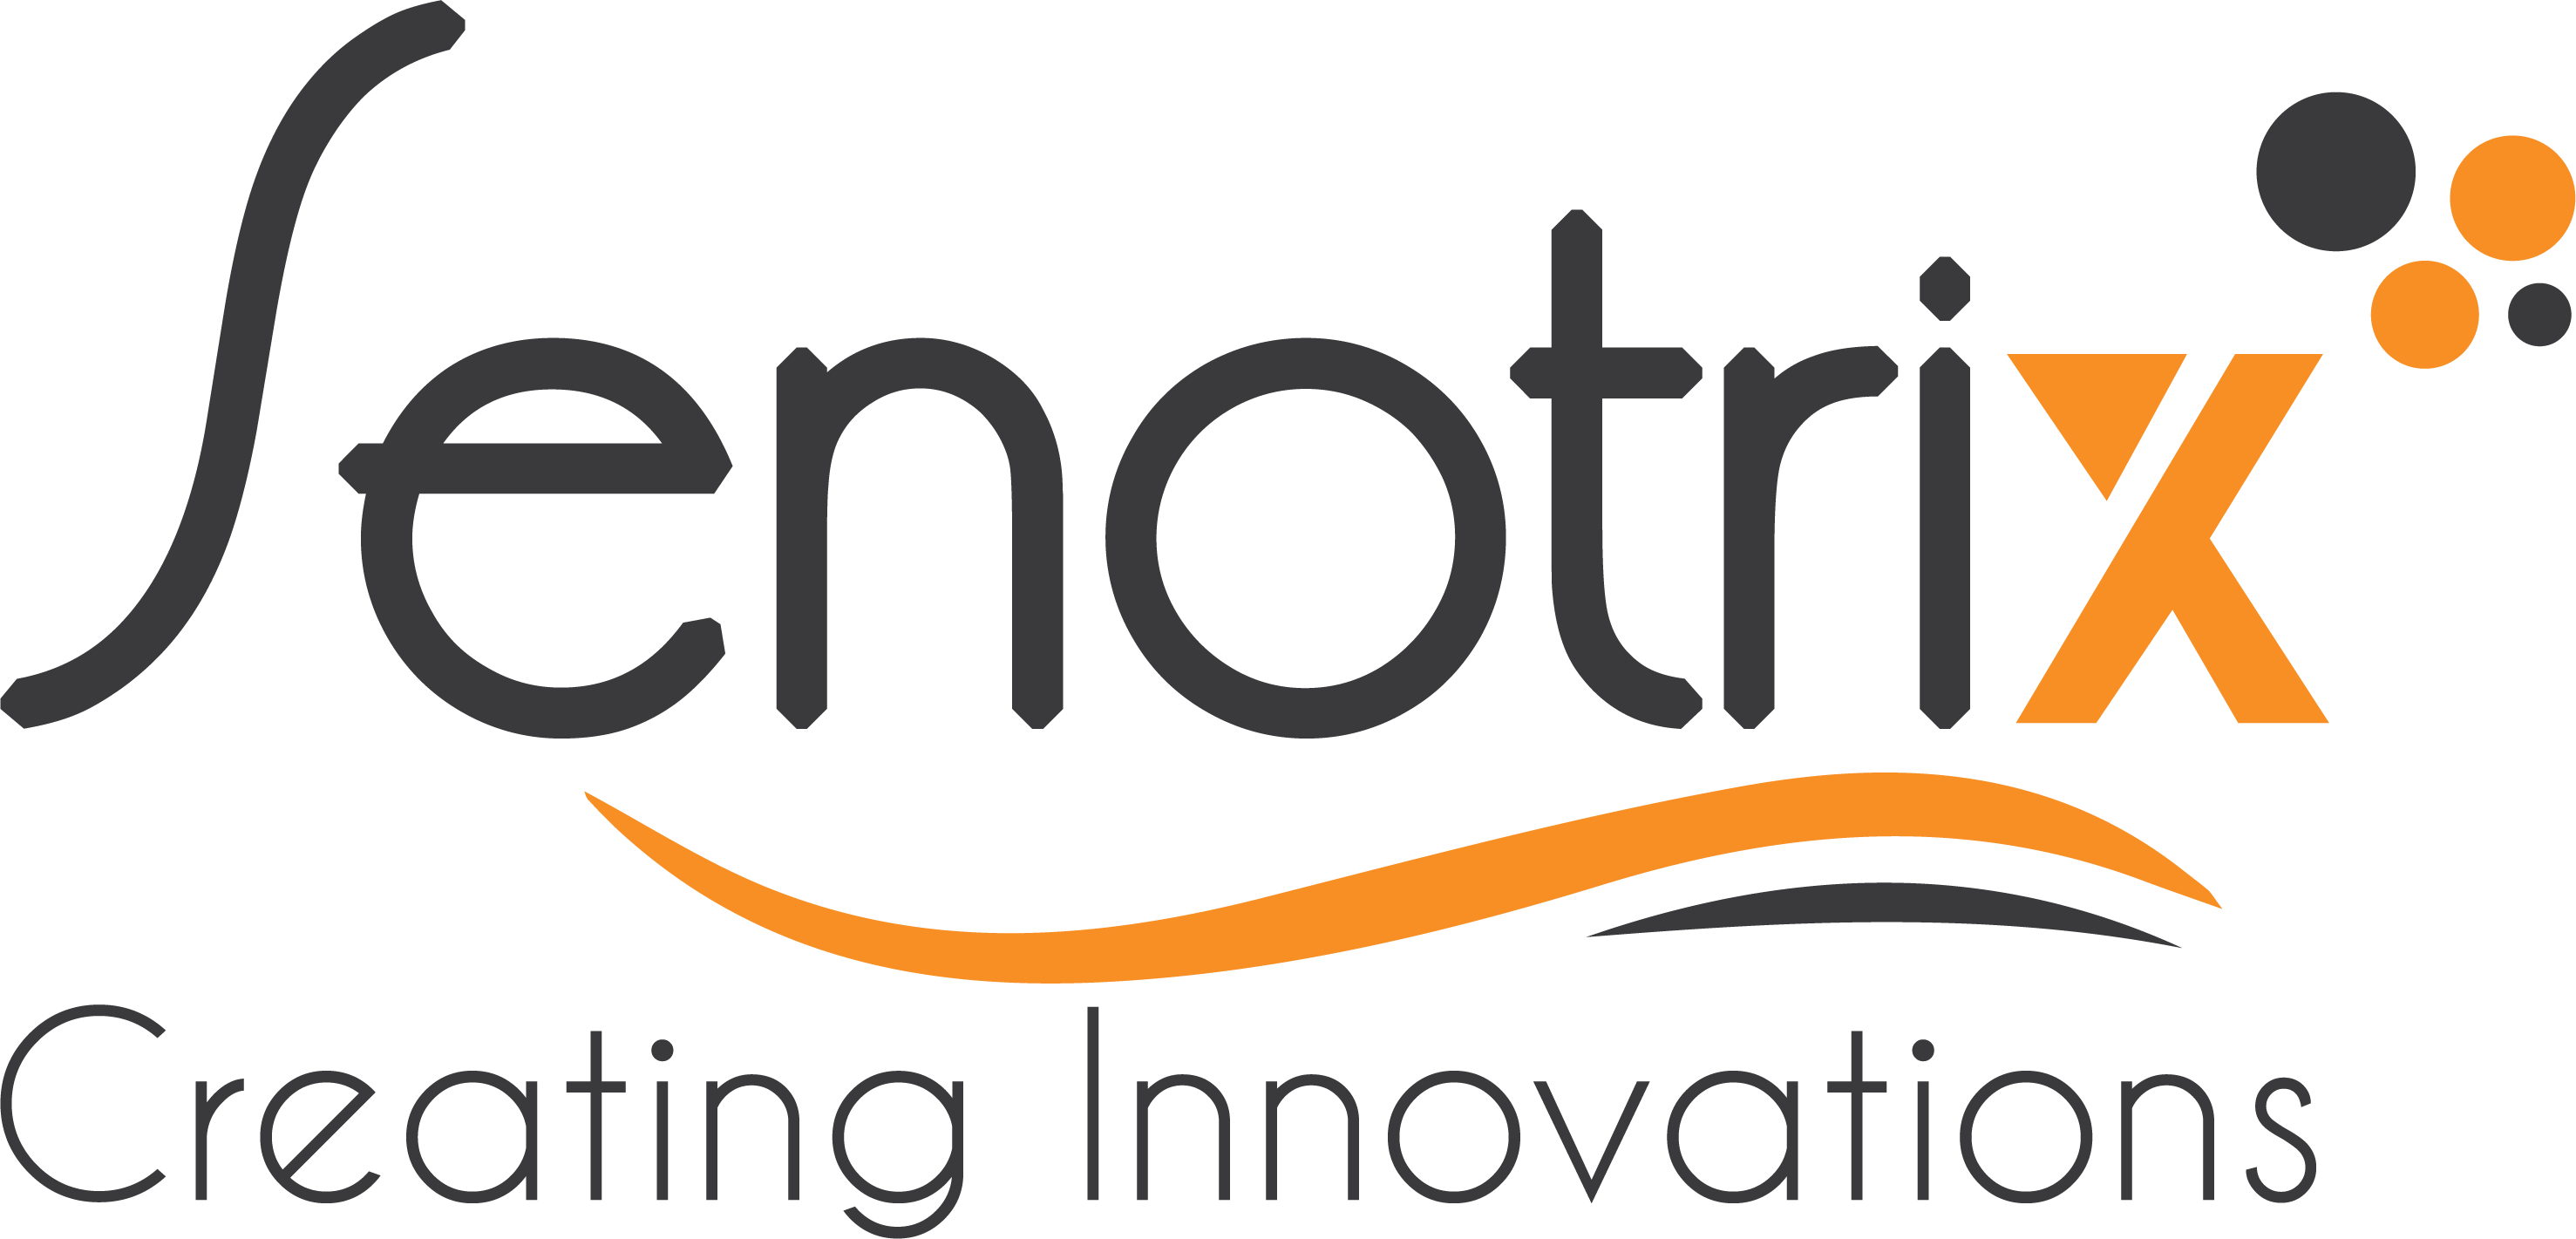 Senotrix Ltd